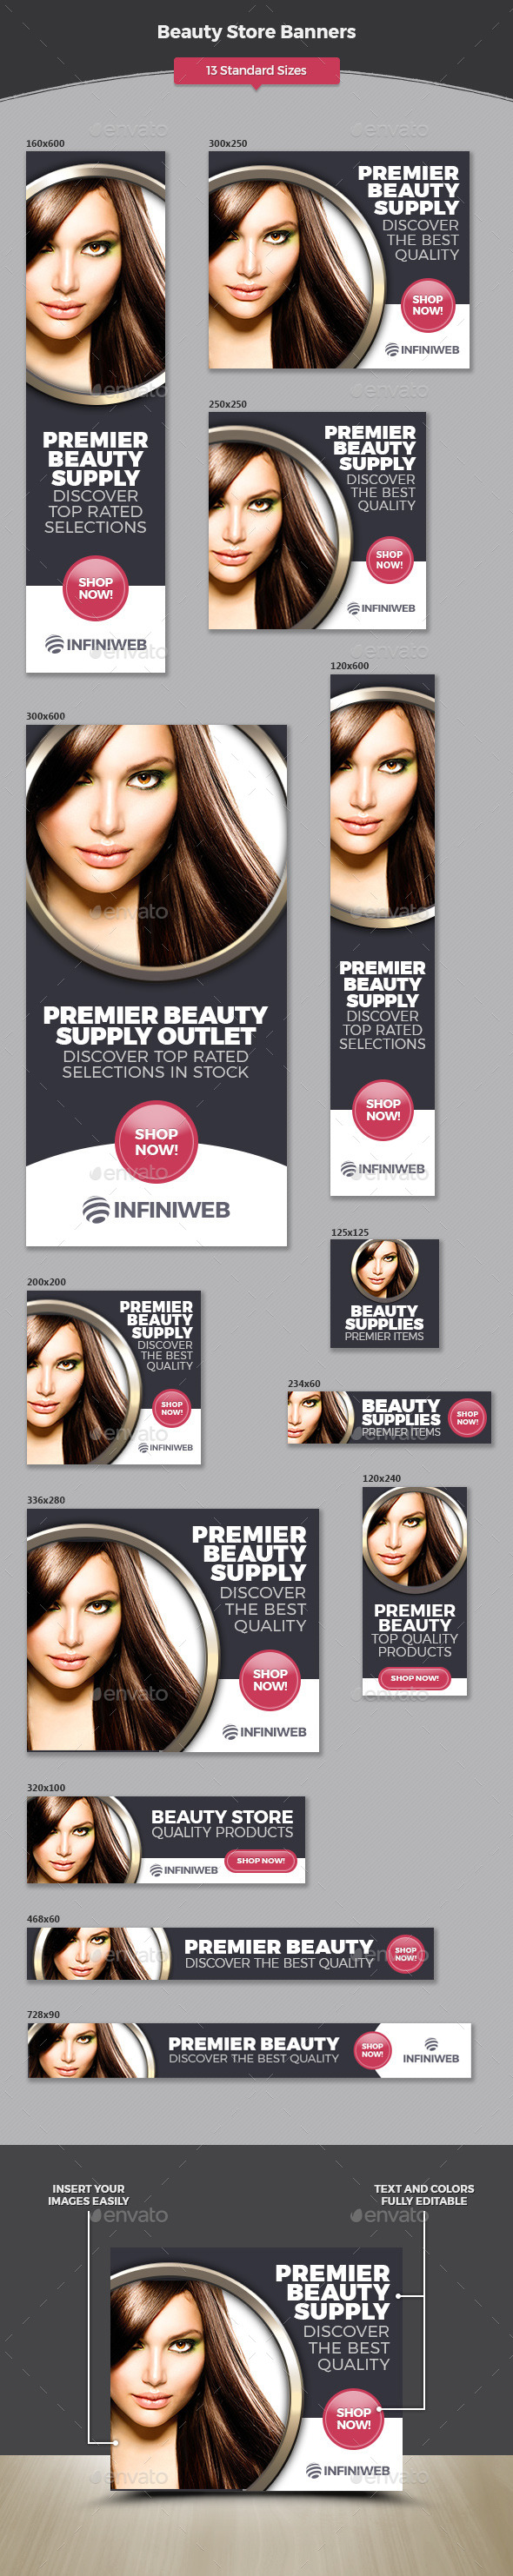 Beauty Store Banners - Banners & Ads Web Elements